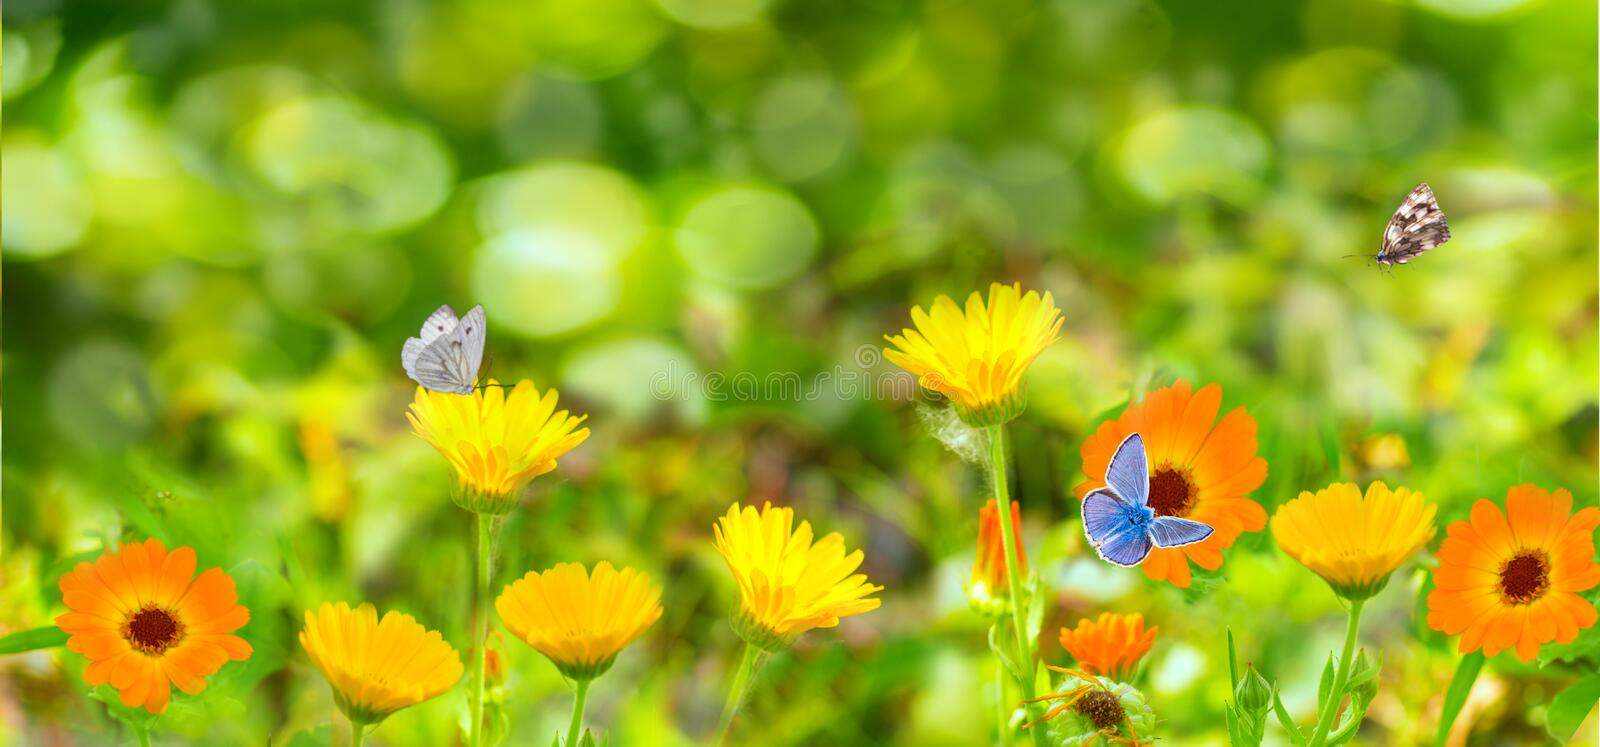 Blurred summer background with Marigold flowers field and butterflies in sunlight stock photo